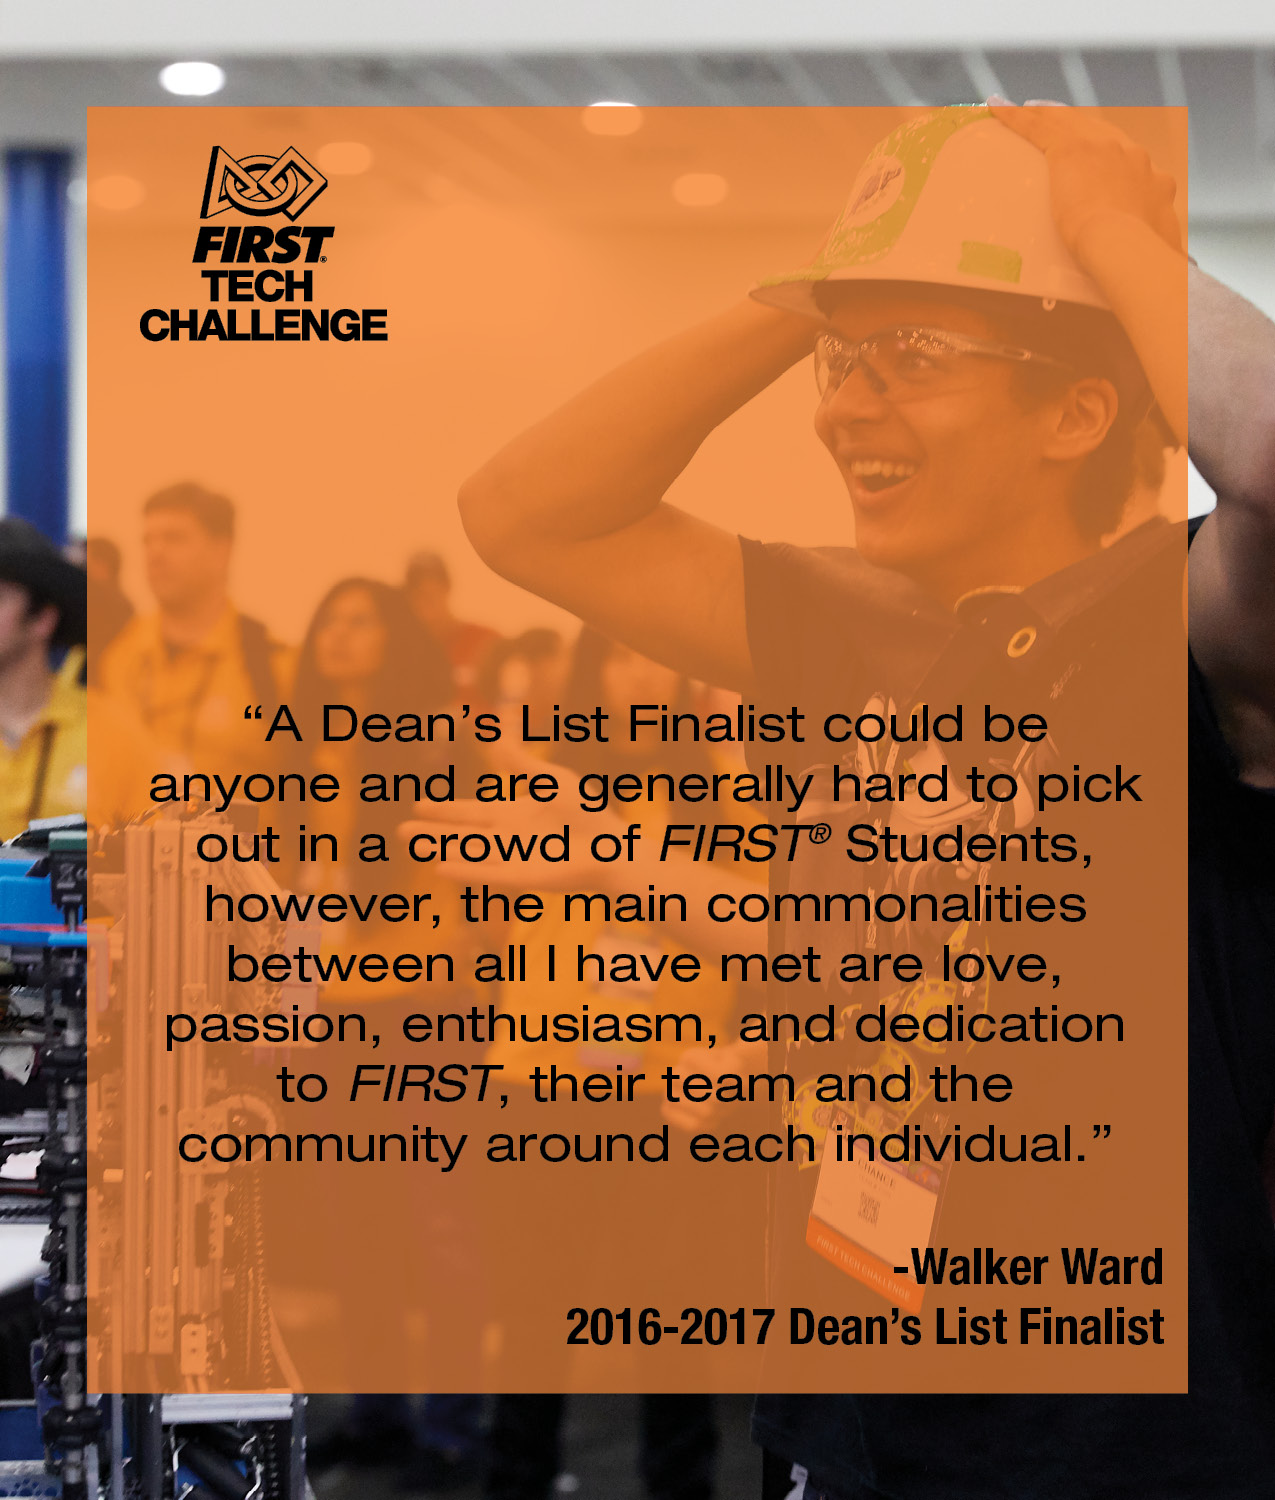 Whats New For The 2018 2019 Season First Tech Challenge Ftc Robotics Wiring Diagram Each Team Can Nominate Up To Two Students Who Are In 10th Or 11th Grade That Exemplify Leadership Qualities An Entrepreneurial